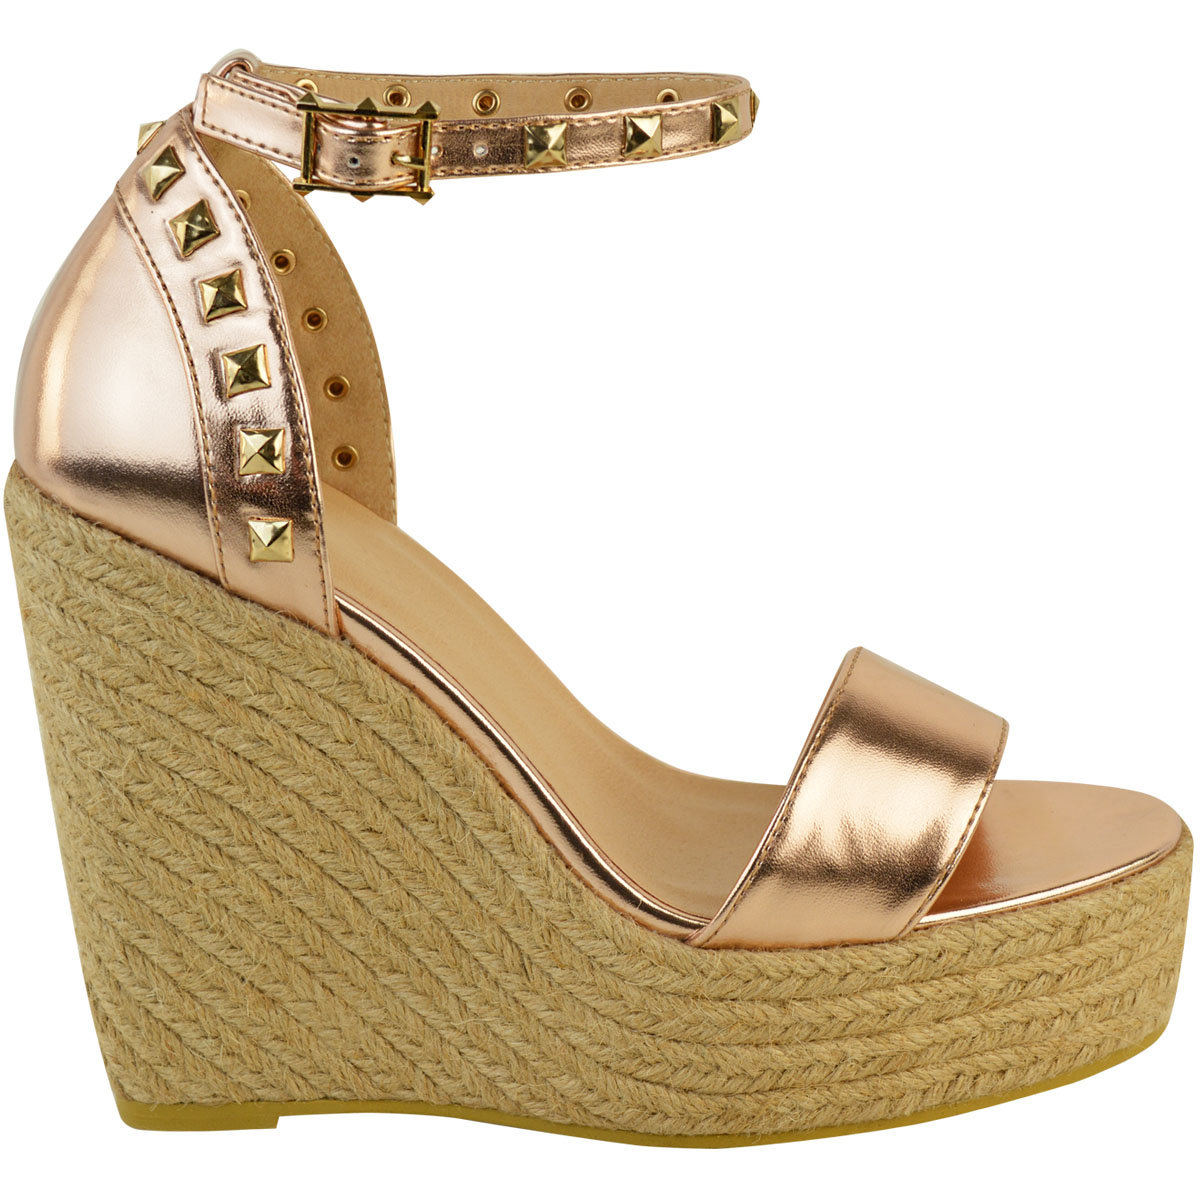 New-Womens-Stud-Espadrille-Wedge-Summer-Sandal-Ladies-Rose-Gold-Party-Shoes-Size thumbnail 7